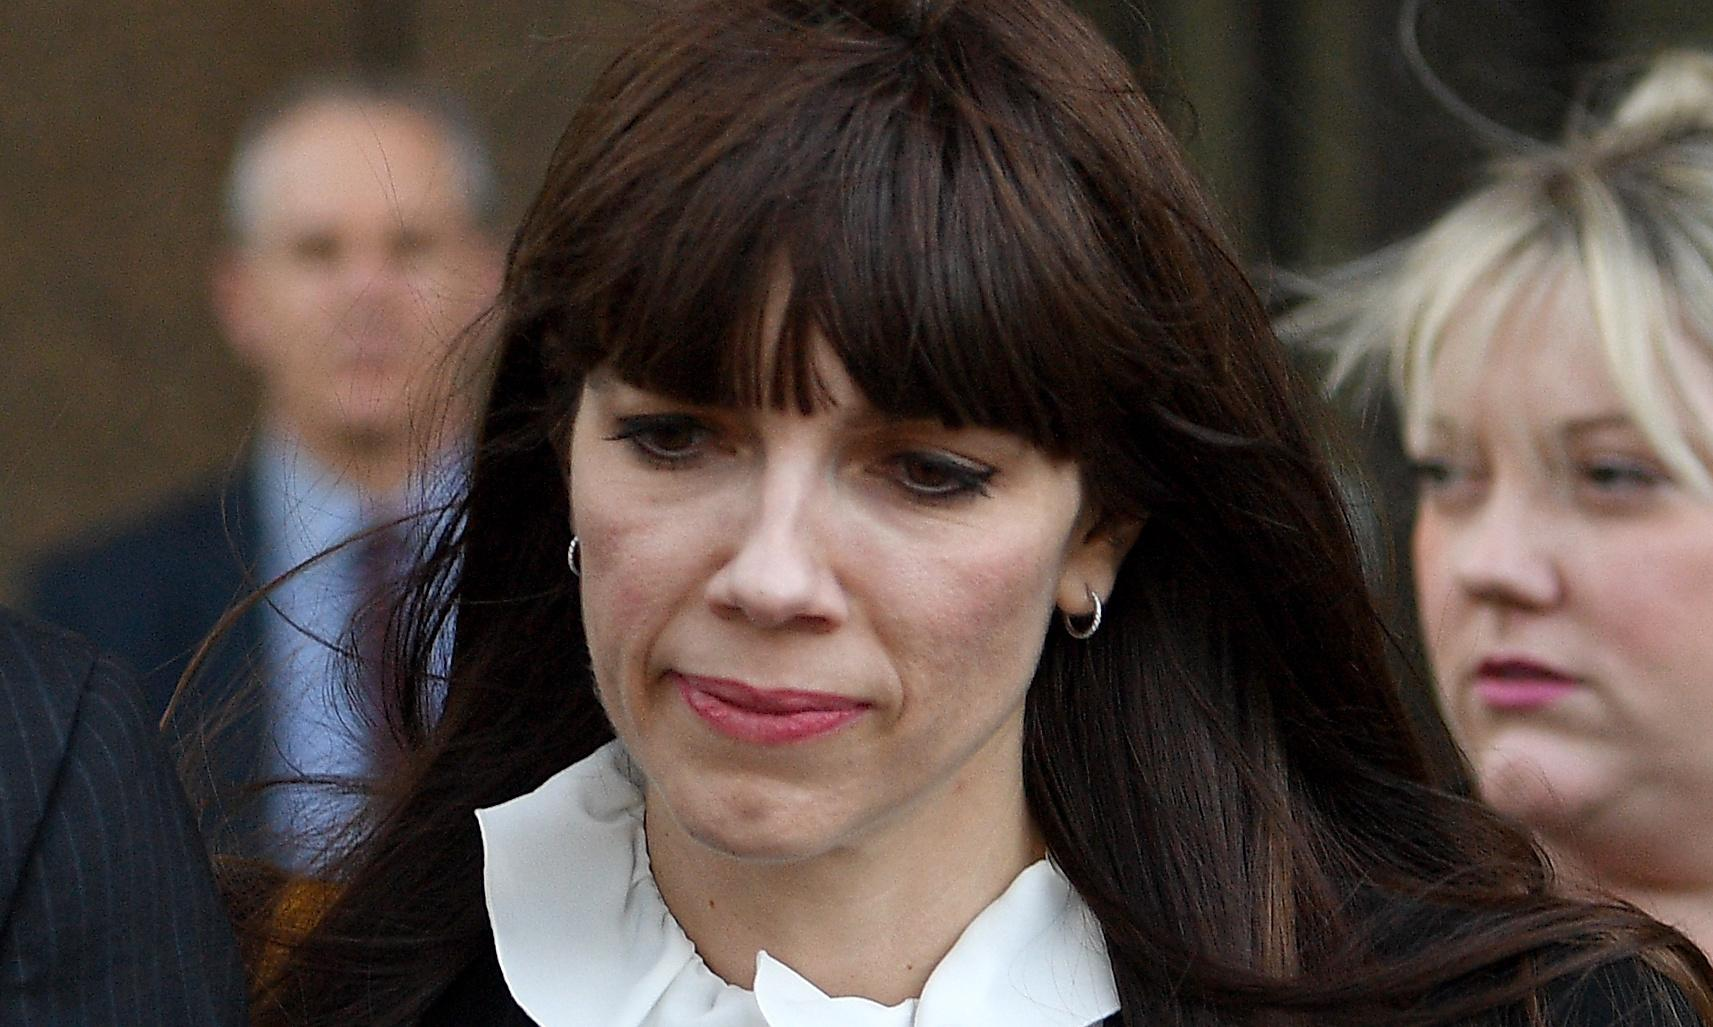 Literary agent ordered to pay $500,000 to Australian author Kate Morton after lawsuit loss